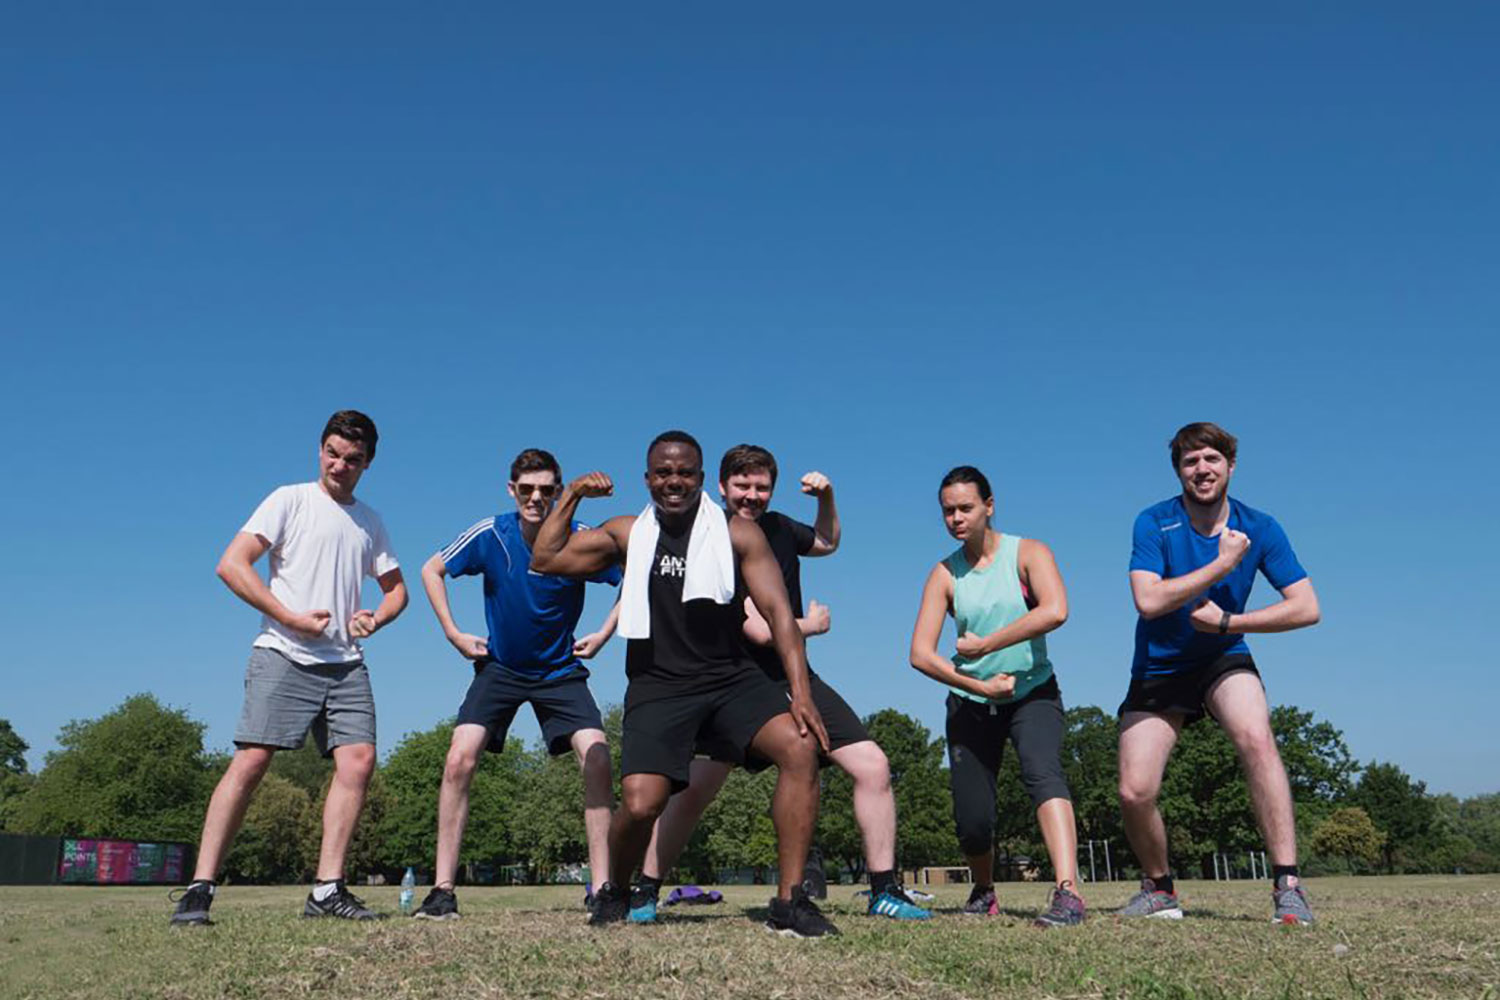 Participants of Victoria Park bootcamp posing to show their strength